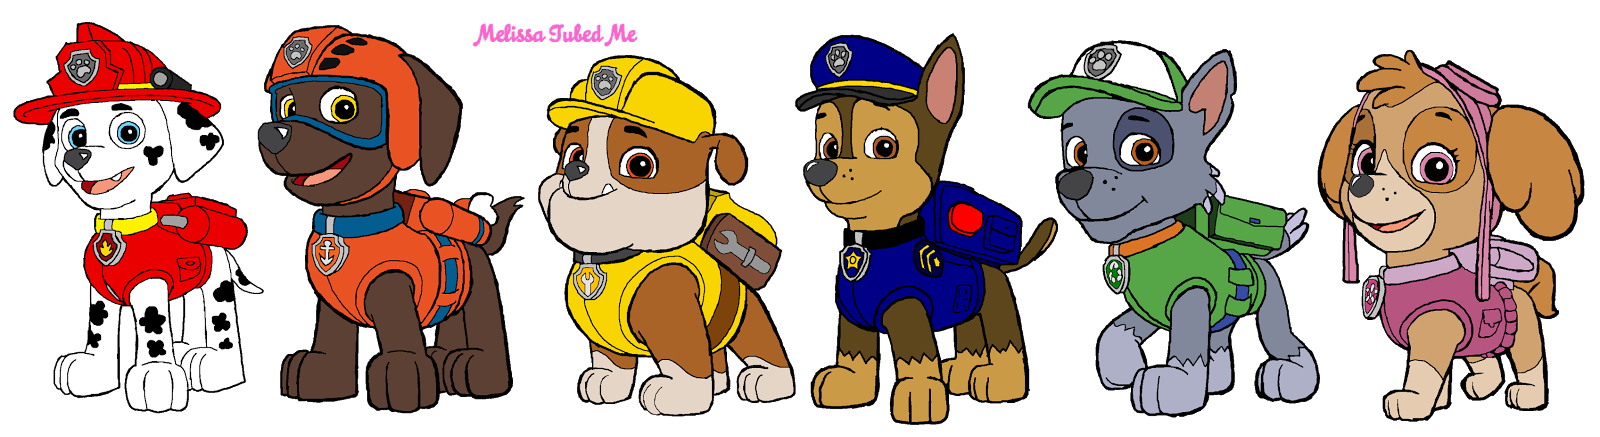 Paw clipart paw patrol. War pencil and in